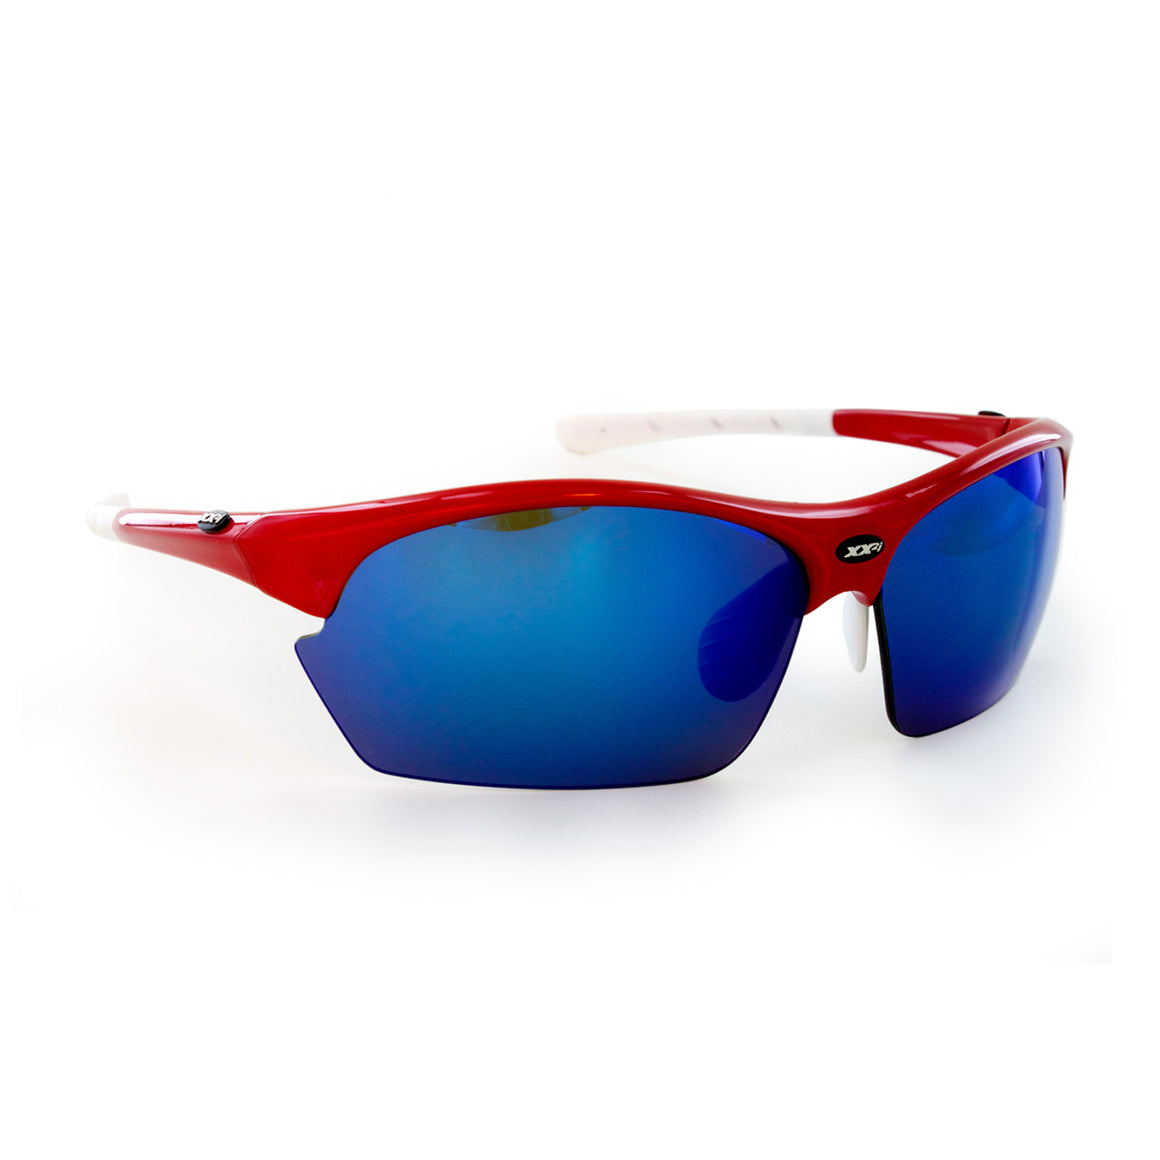 France2 Polarized Performance Sunglasses